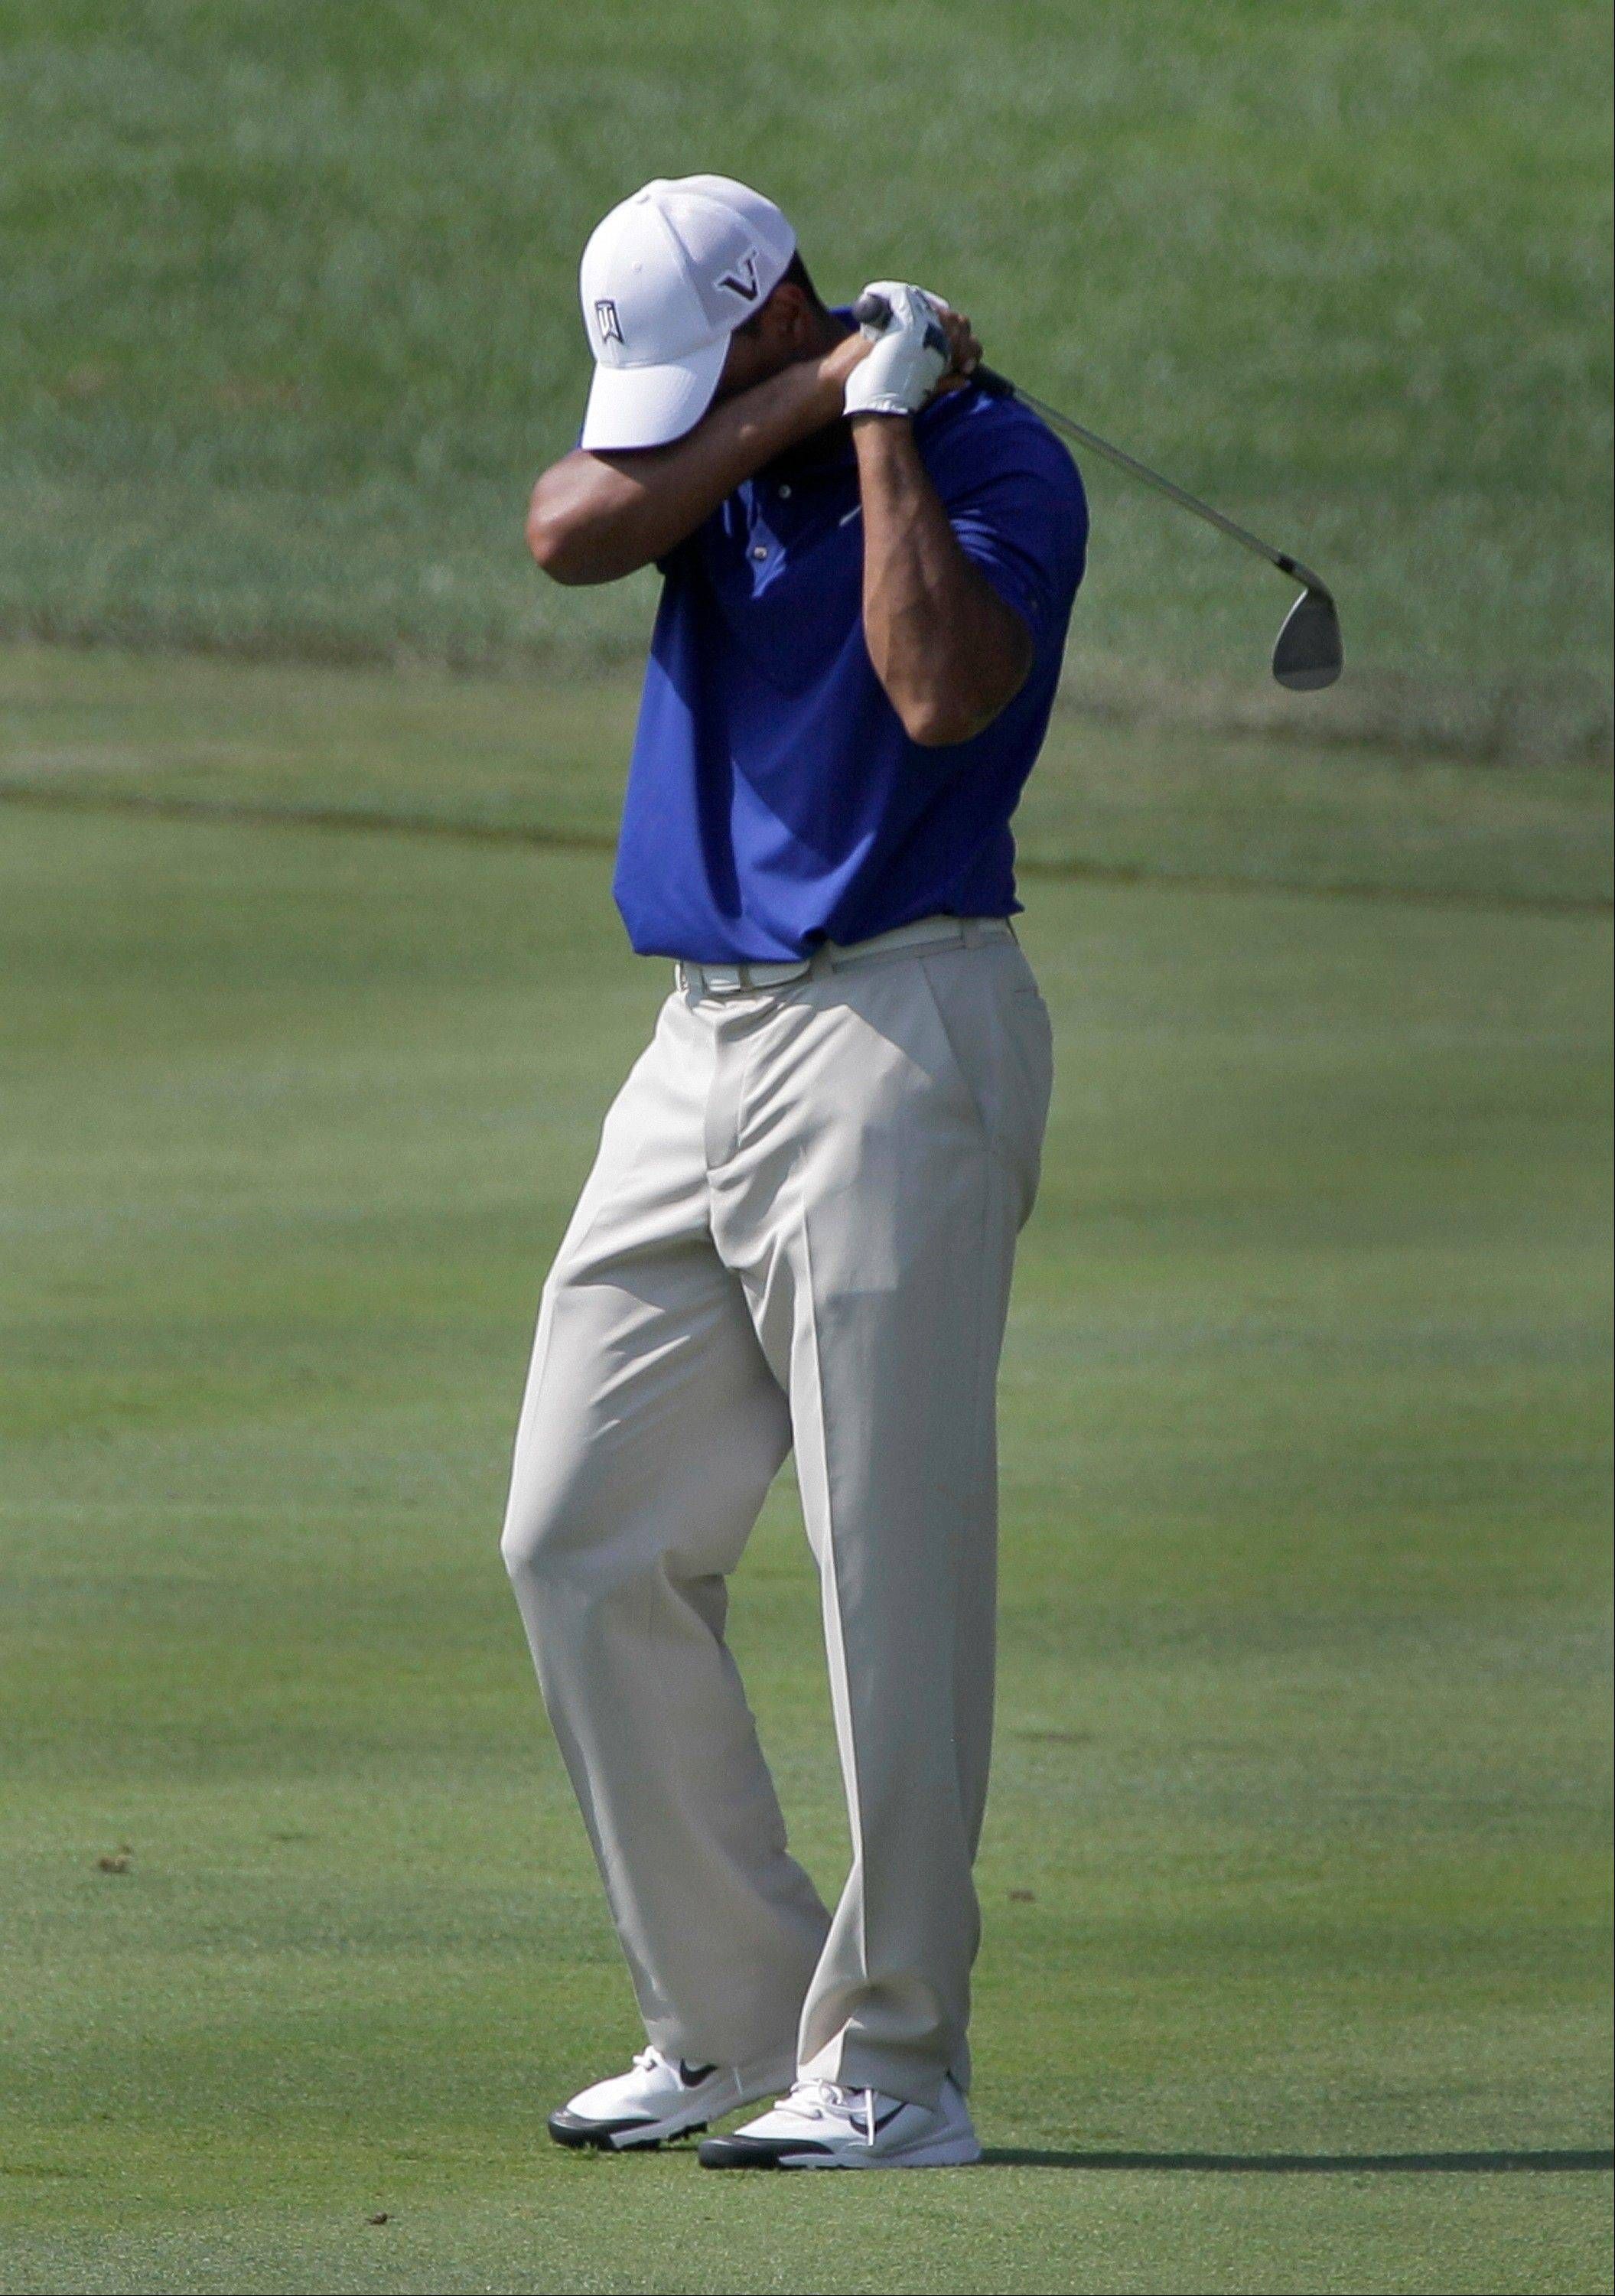 Tiger Woods reacts on the 16th fairway as his shot goes into a bunker Saturday in the Bridgestone Invitational golf tournament at Firestone Country Club in Akron, Ohio.